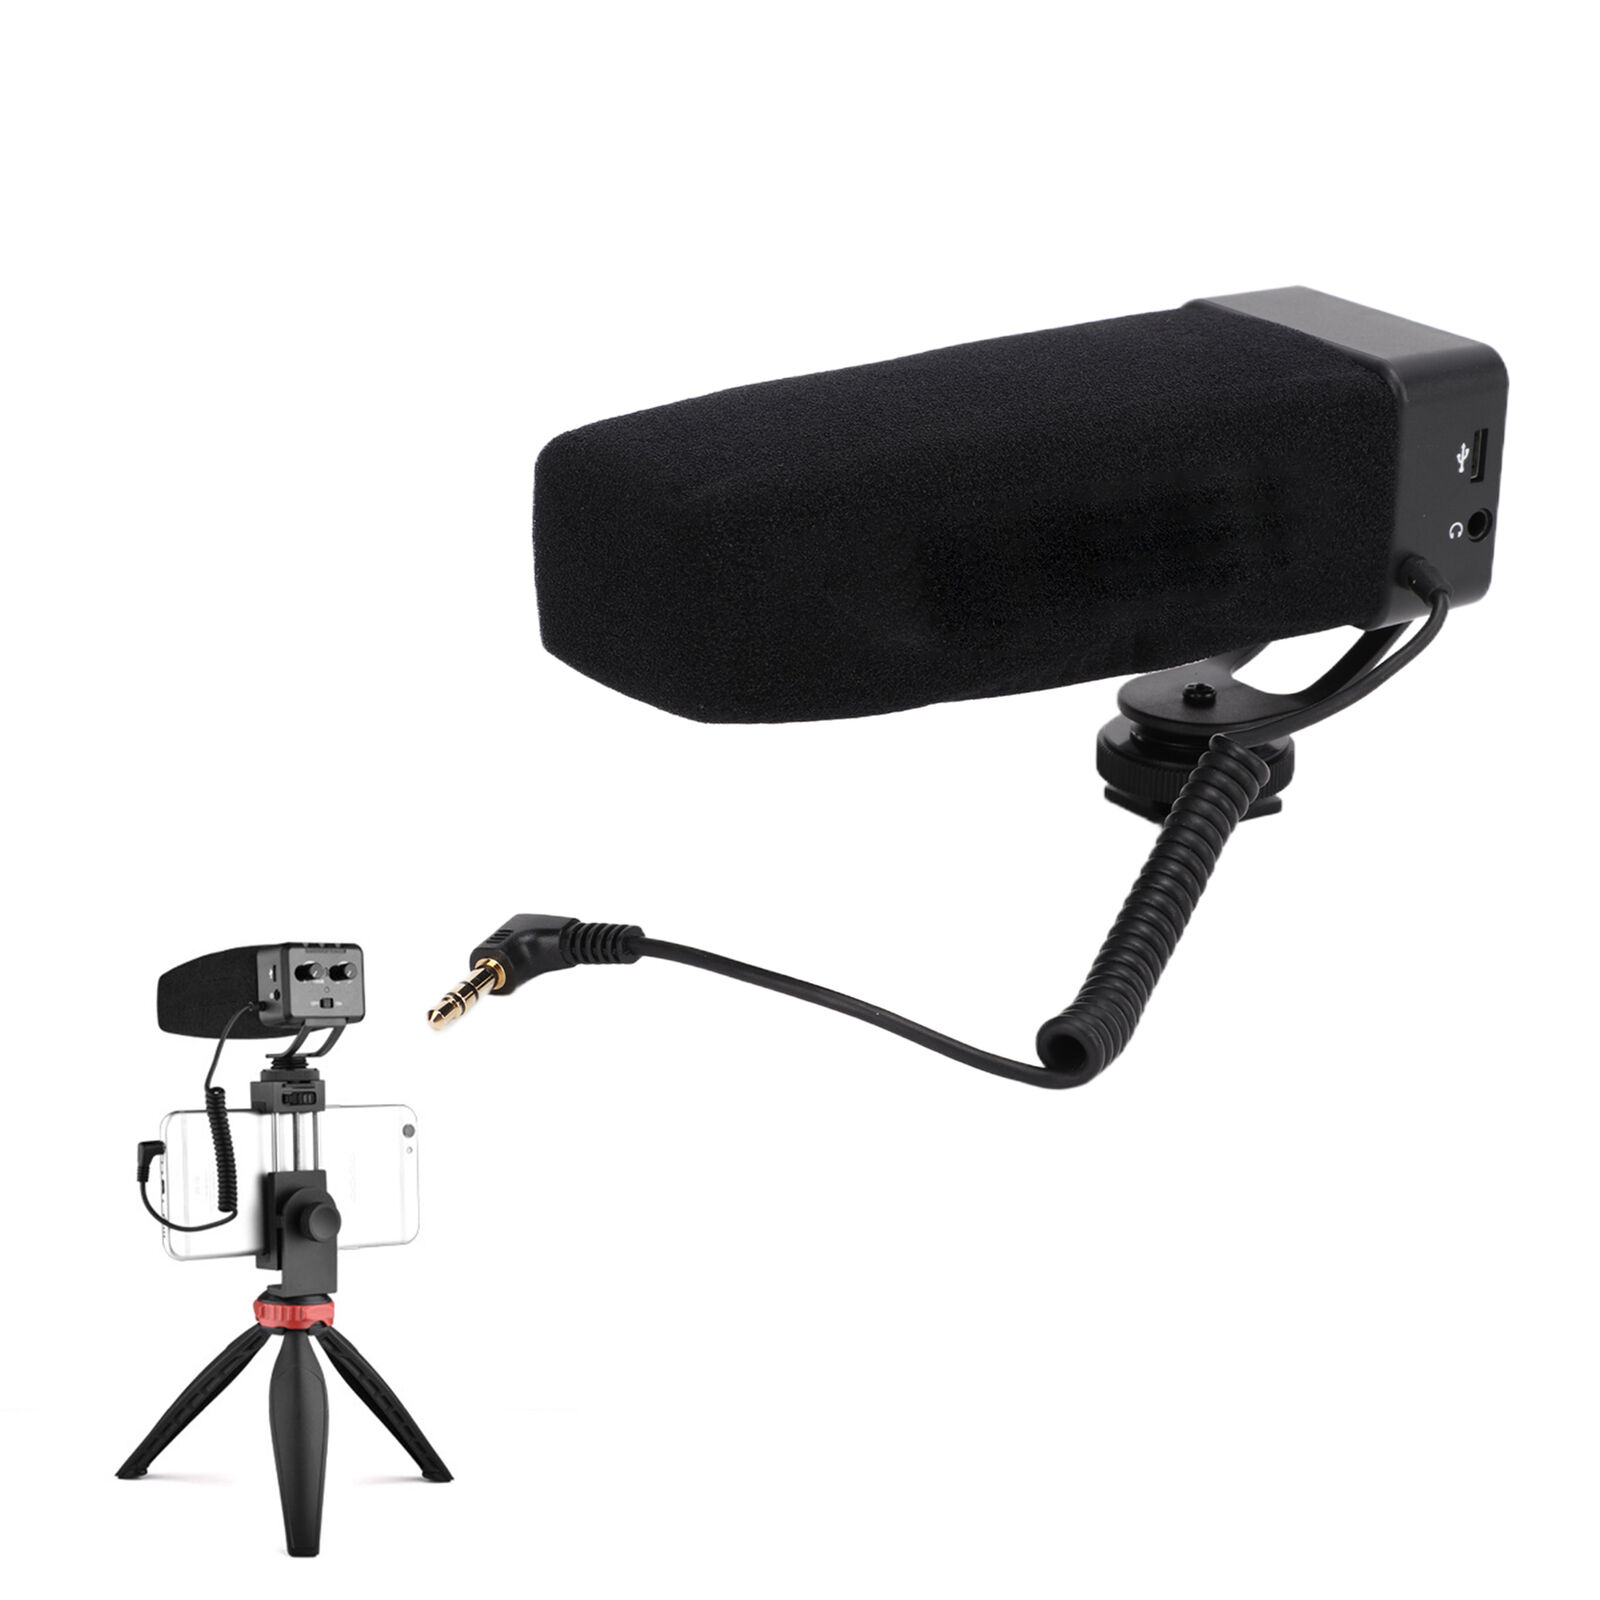 YELANGU Professional Camcorder Interview Microphone Video Photography Mic Gift